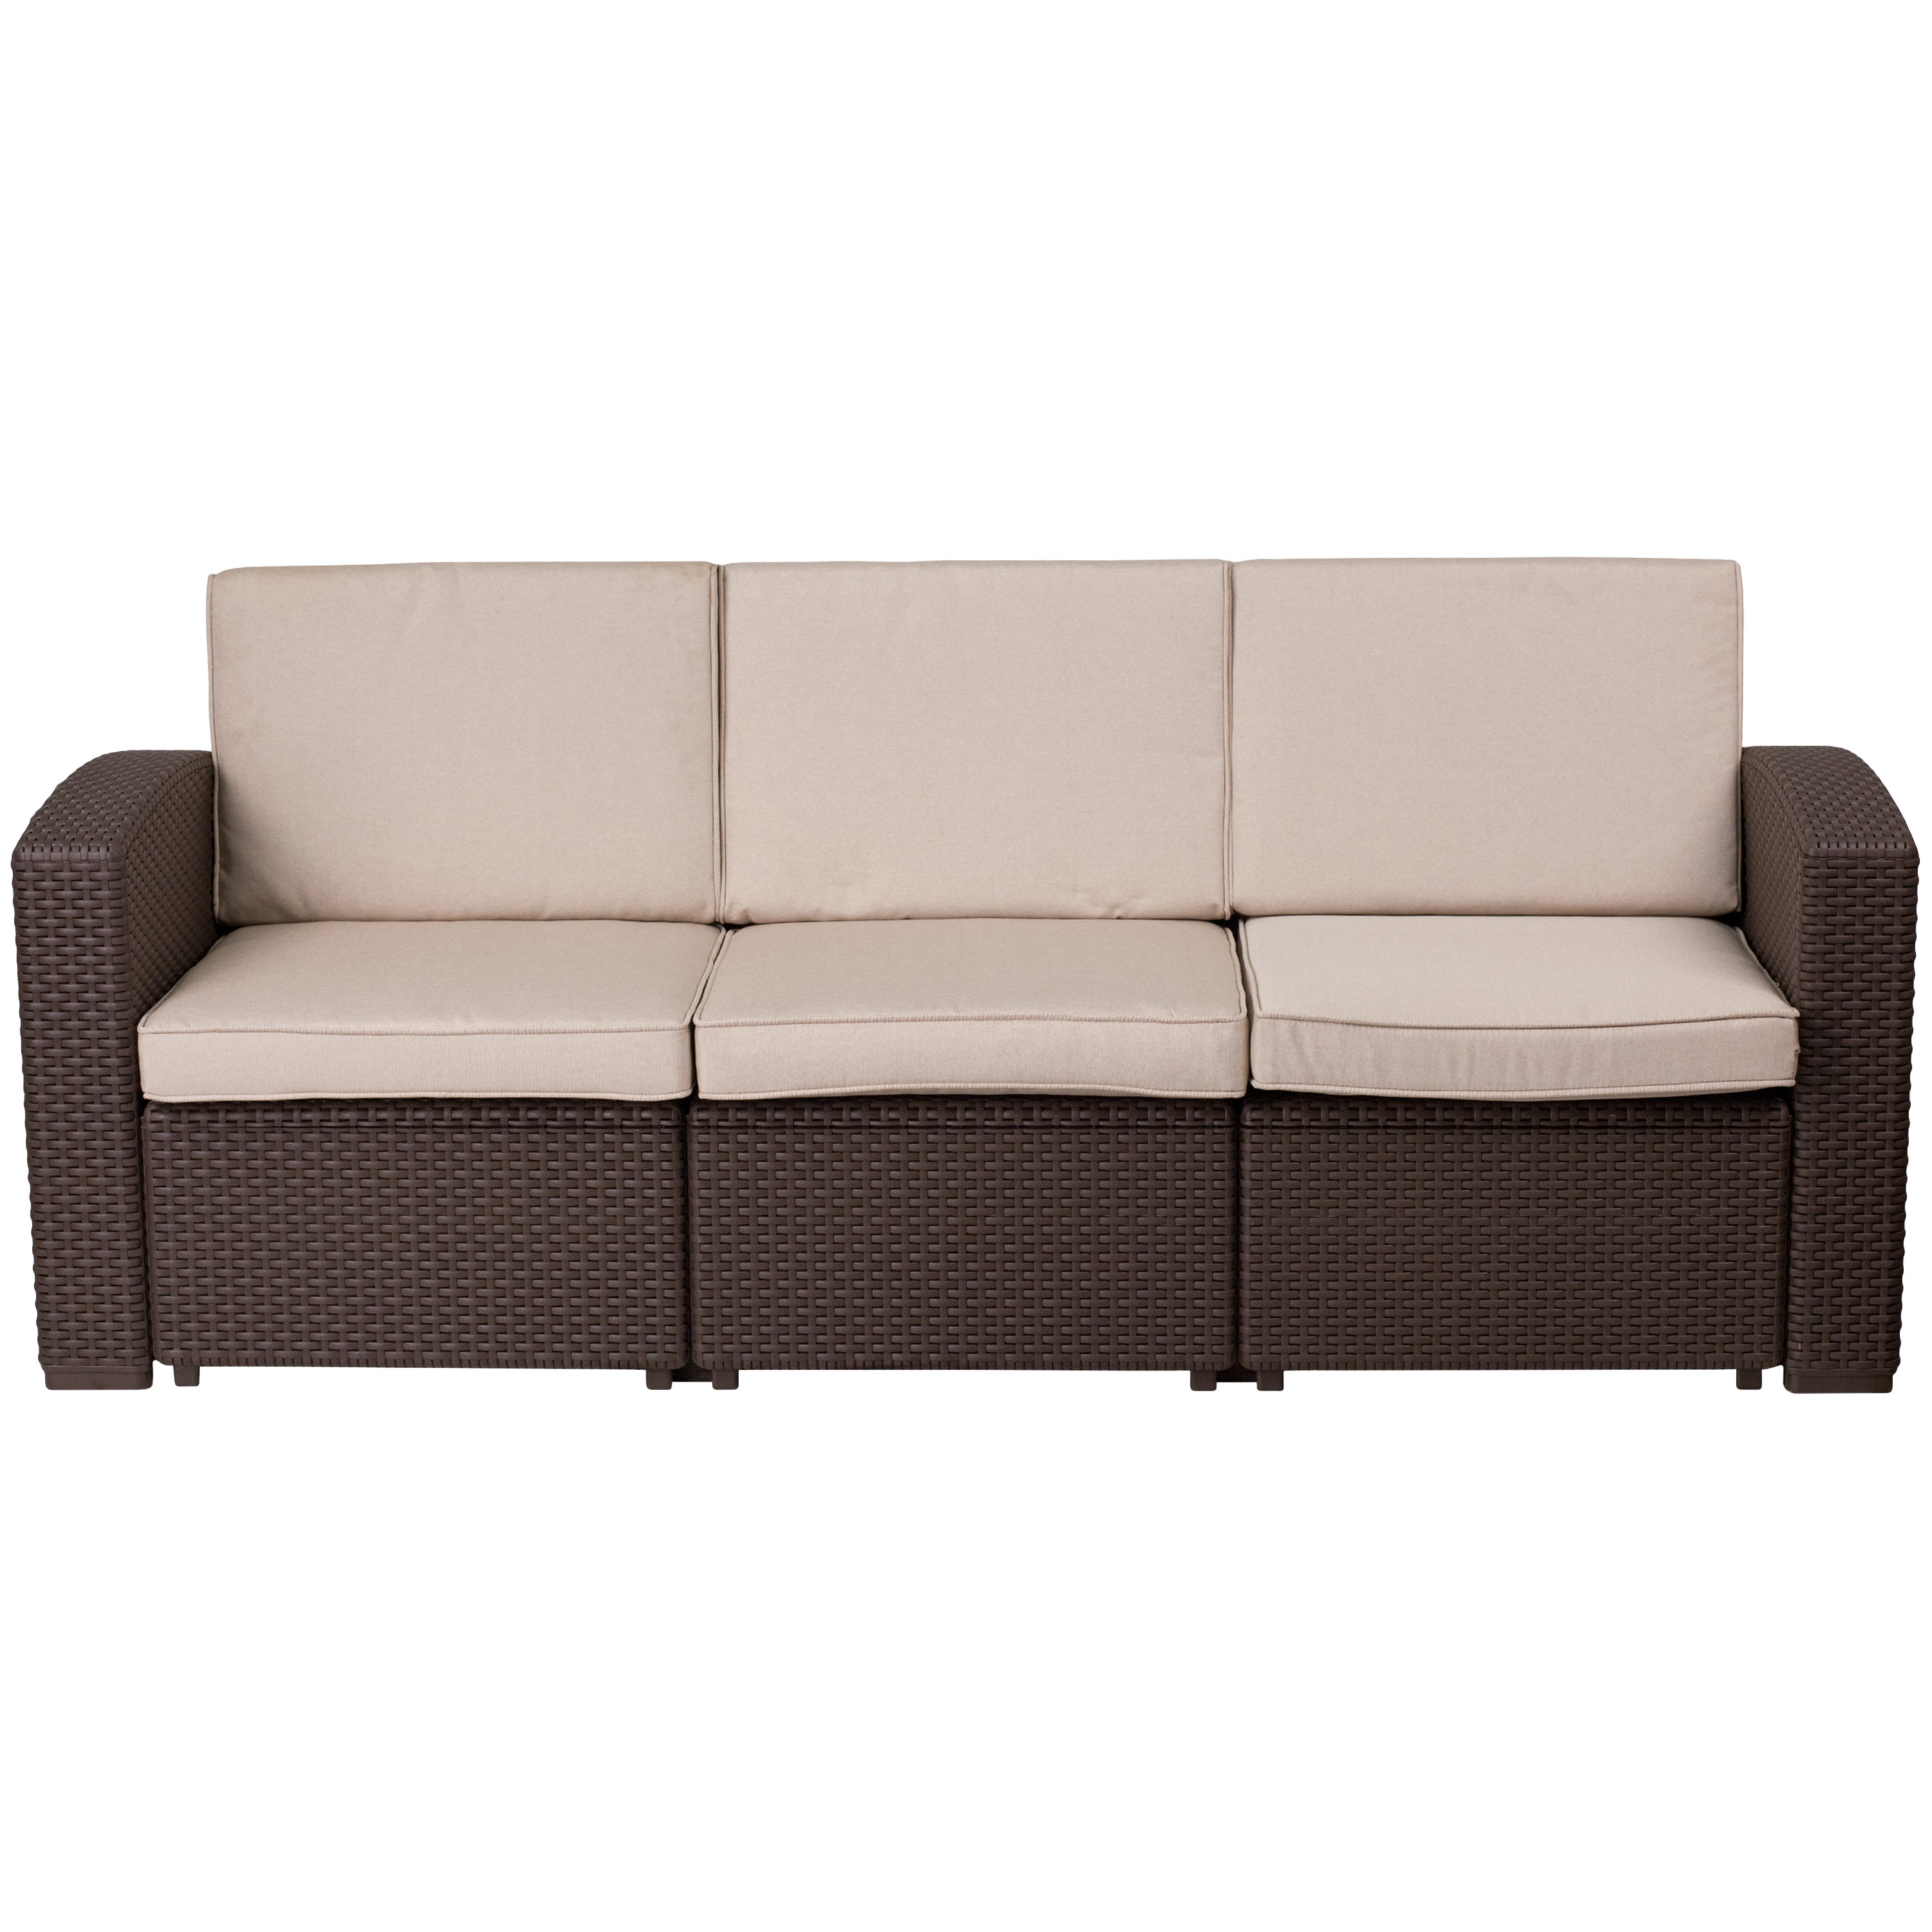 Popular Clifford Patio Sofa With Cushions With Patio Sofas With Cushions (View 17 of 20)